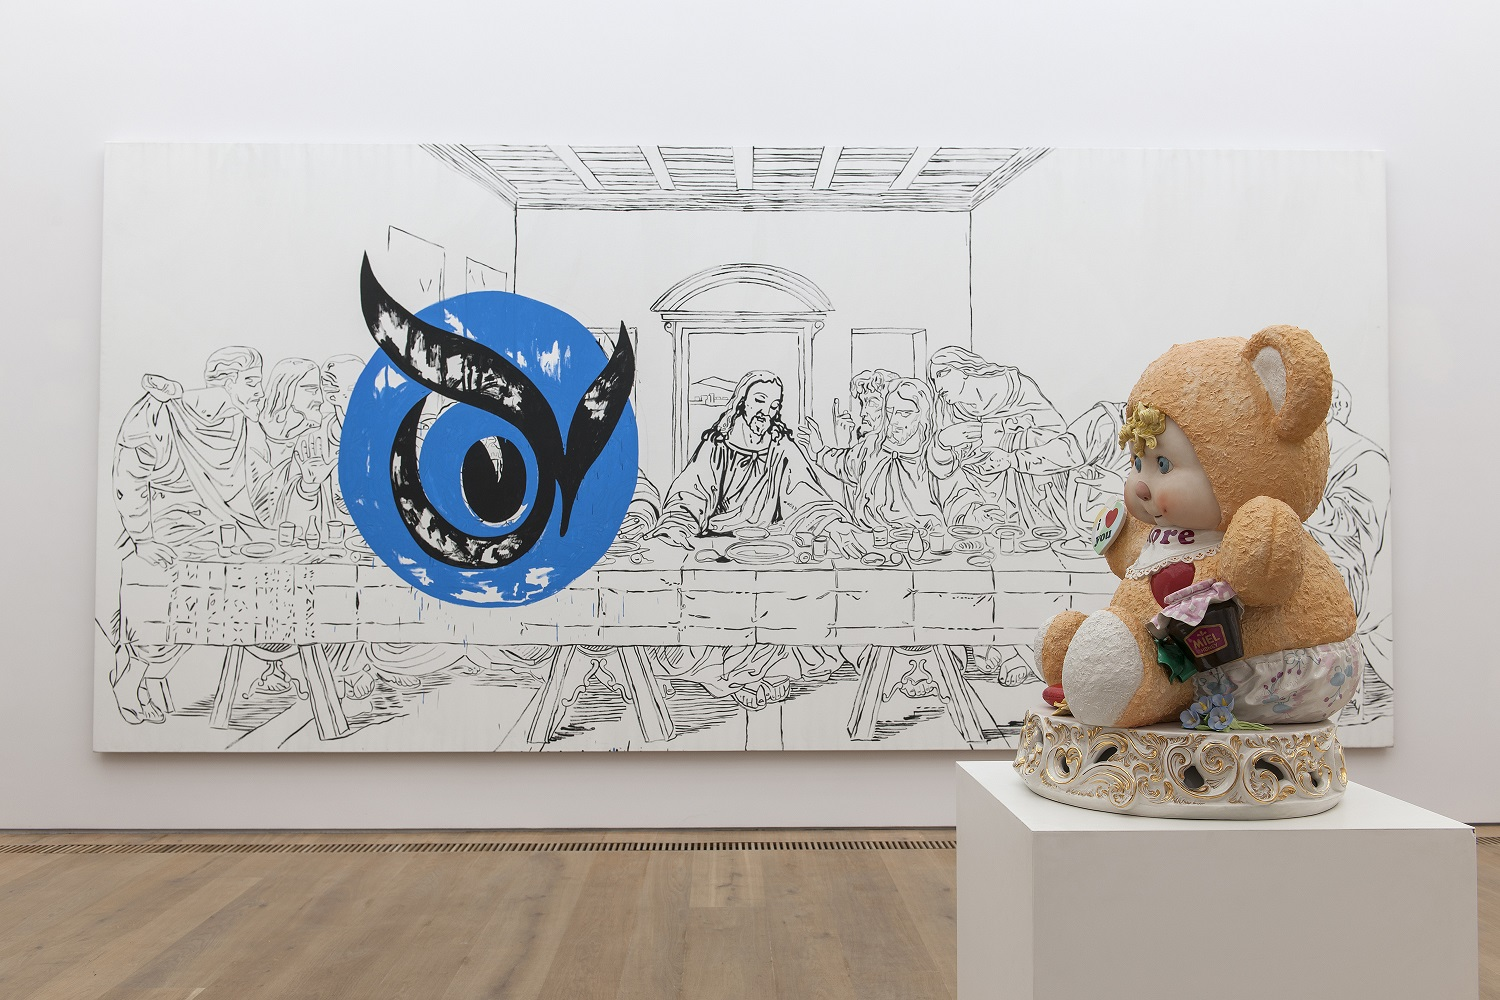 Im Vordergrund: Jeff Koons, Amore, 1988 © Jeff Koons | Im Hintergrund: Andy Warhol, The Last Supper, 1986 © The Andy Warhol Foundation for Visual Arts, Inc./Artists Rights Society (ARS), New York © Foto: H. Koyupinar